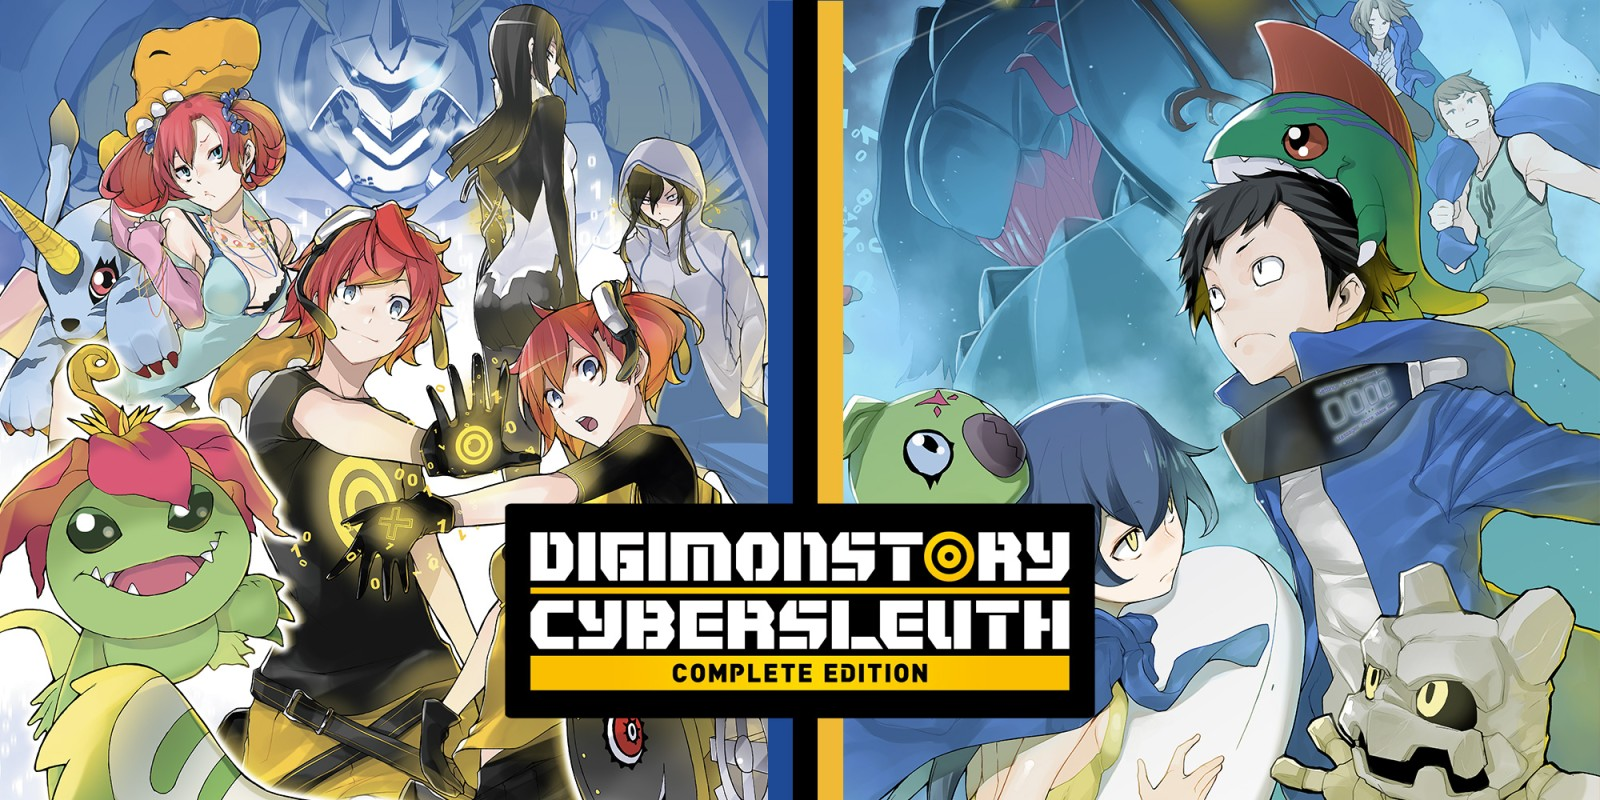 Digimon Story: Cyber Sleuth Complete Edition – Japanese Overview Trailer